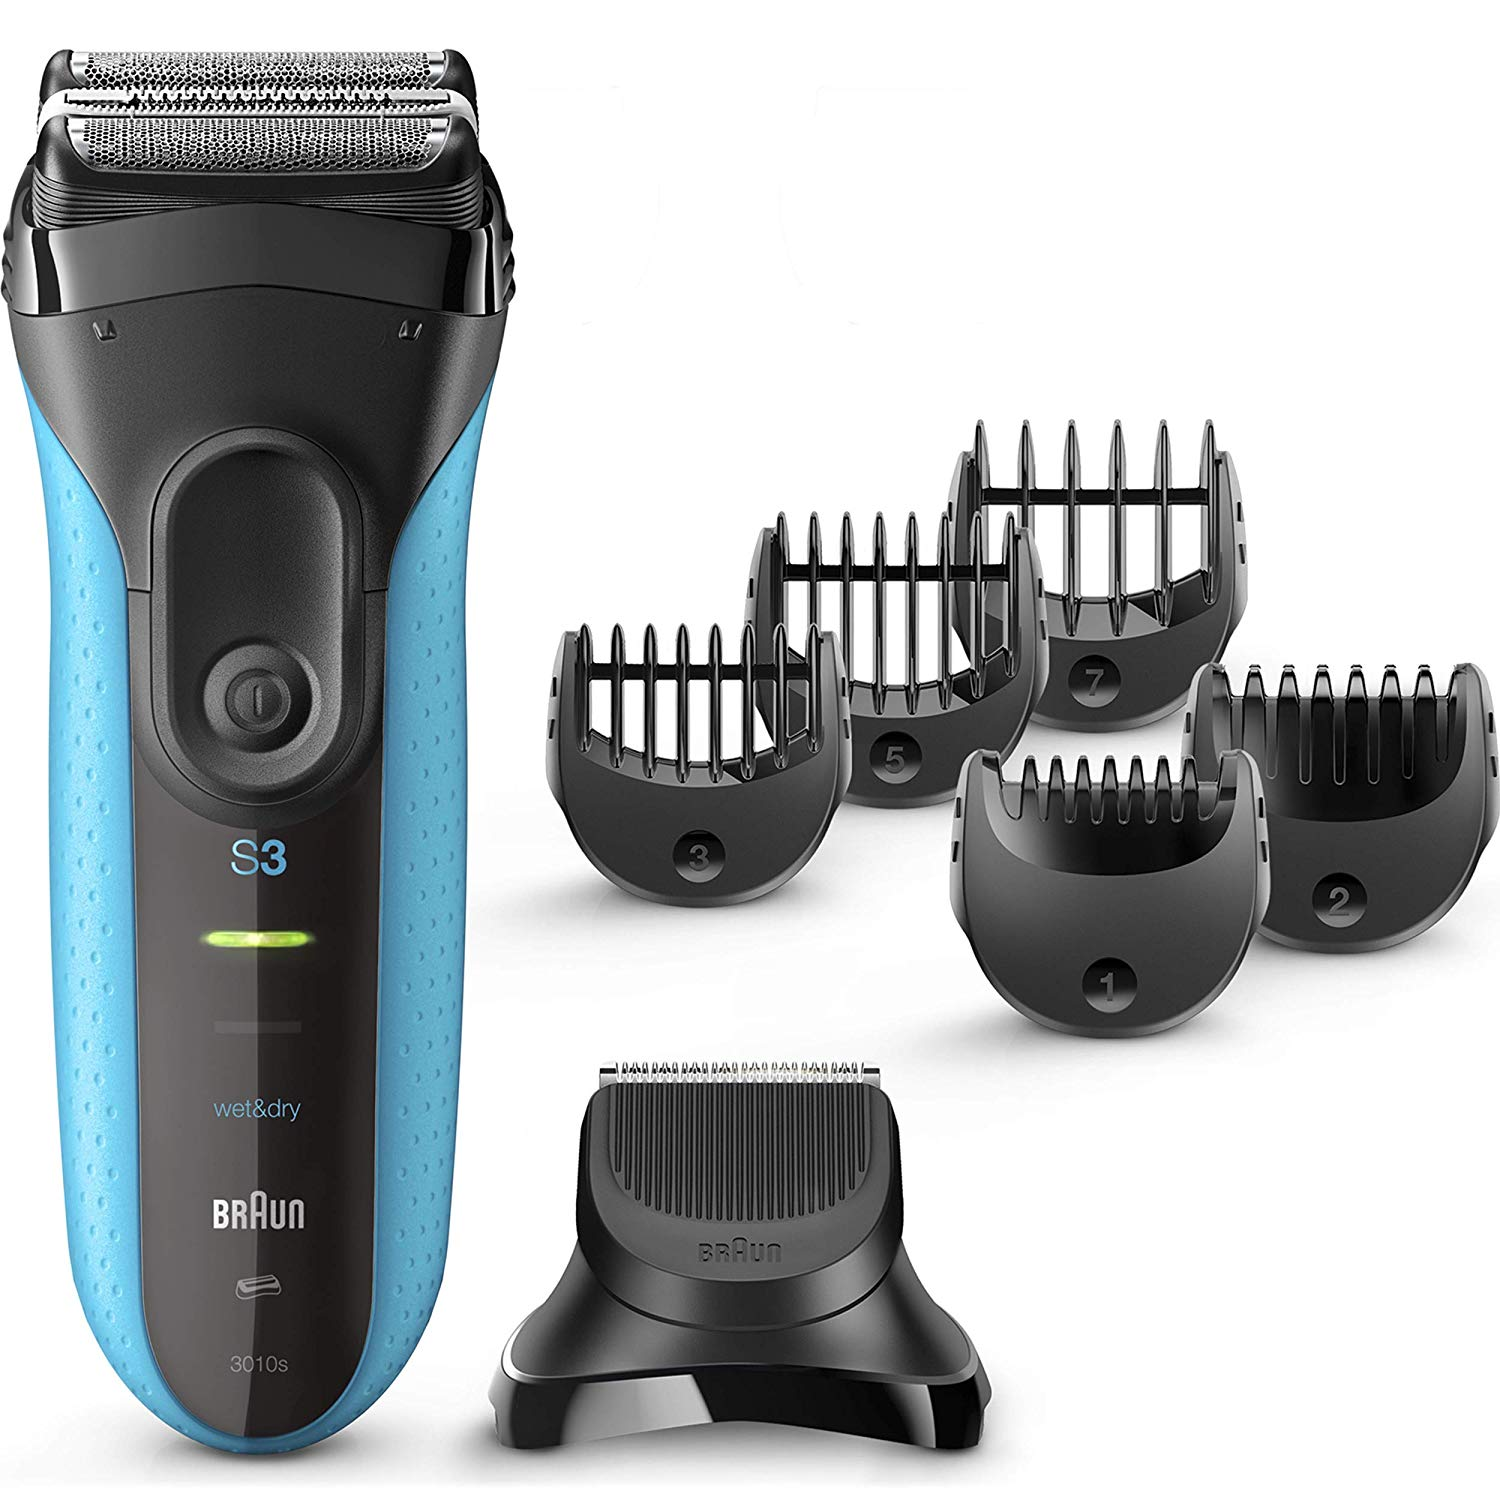 Braun Shaver Amazon Deal of the Day